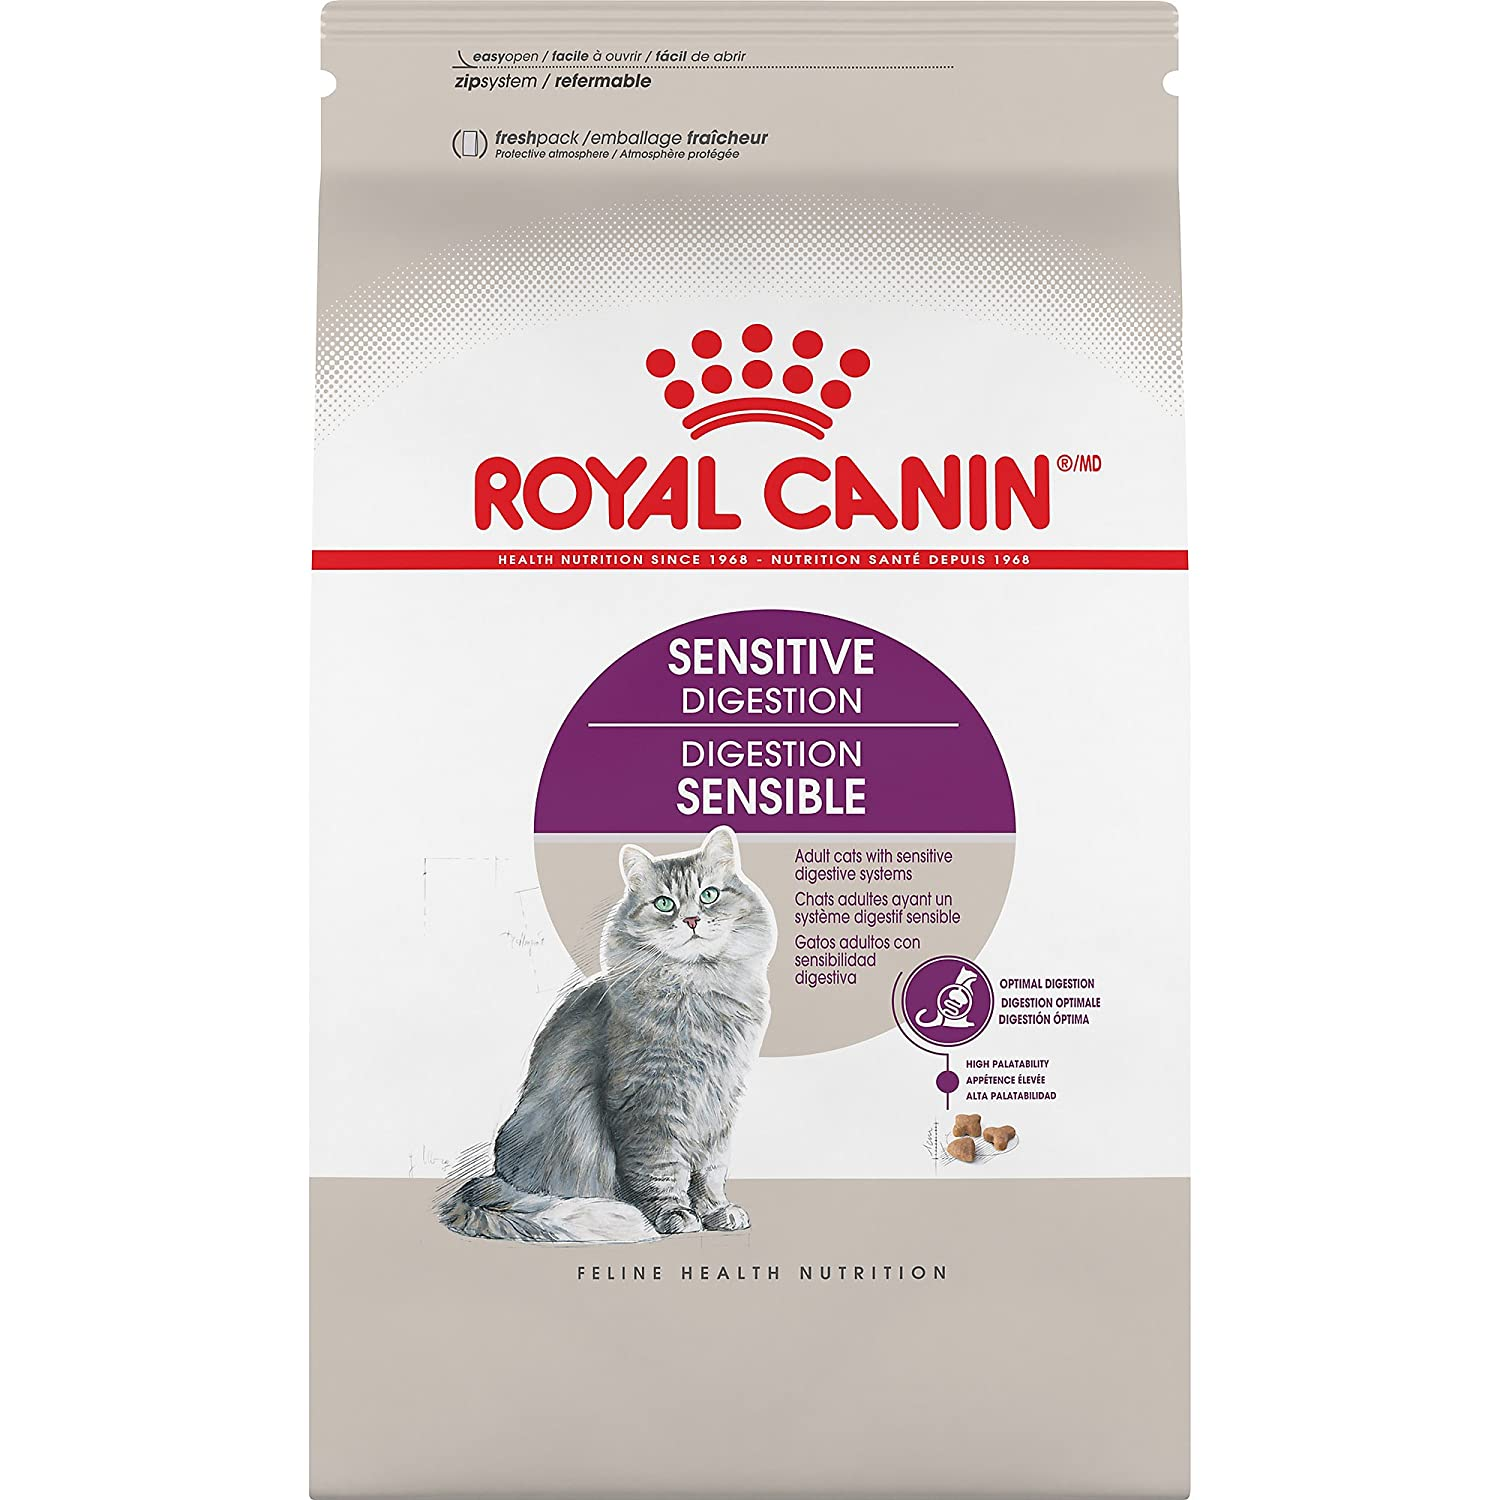 Royal Canin Cat Food For Diarrhea